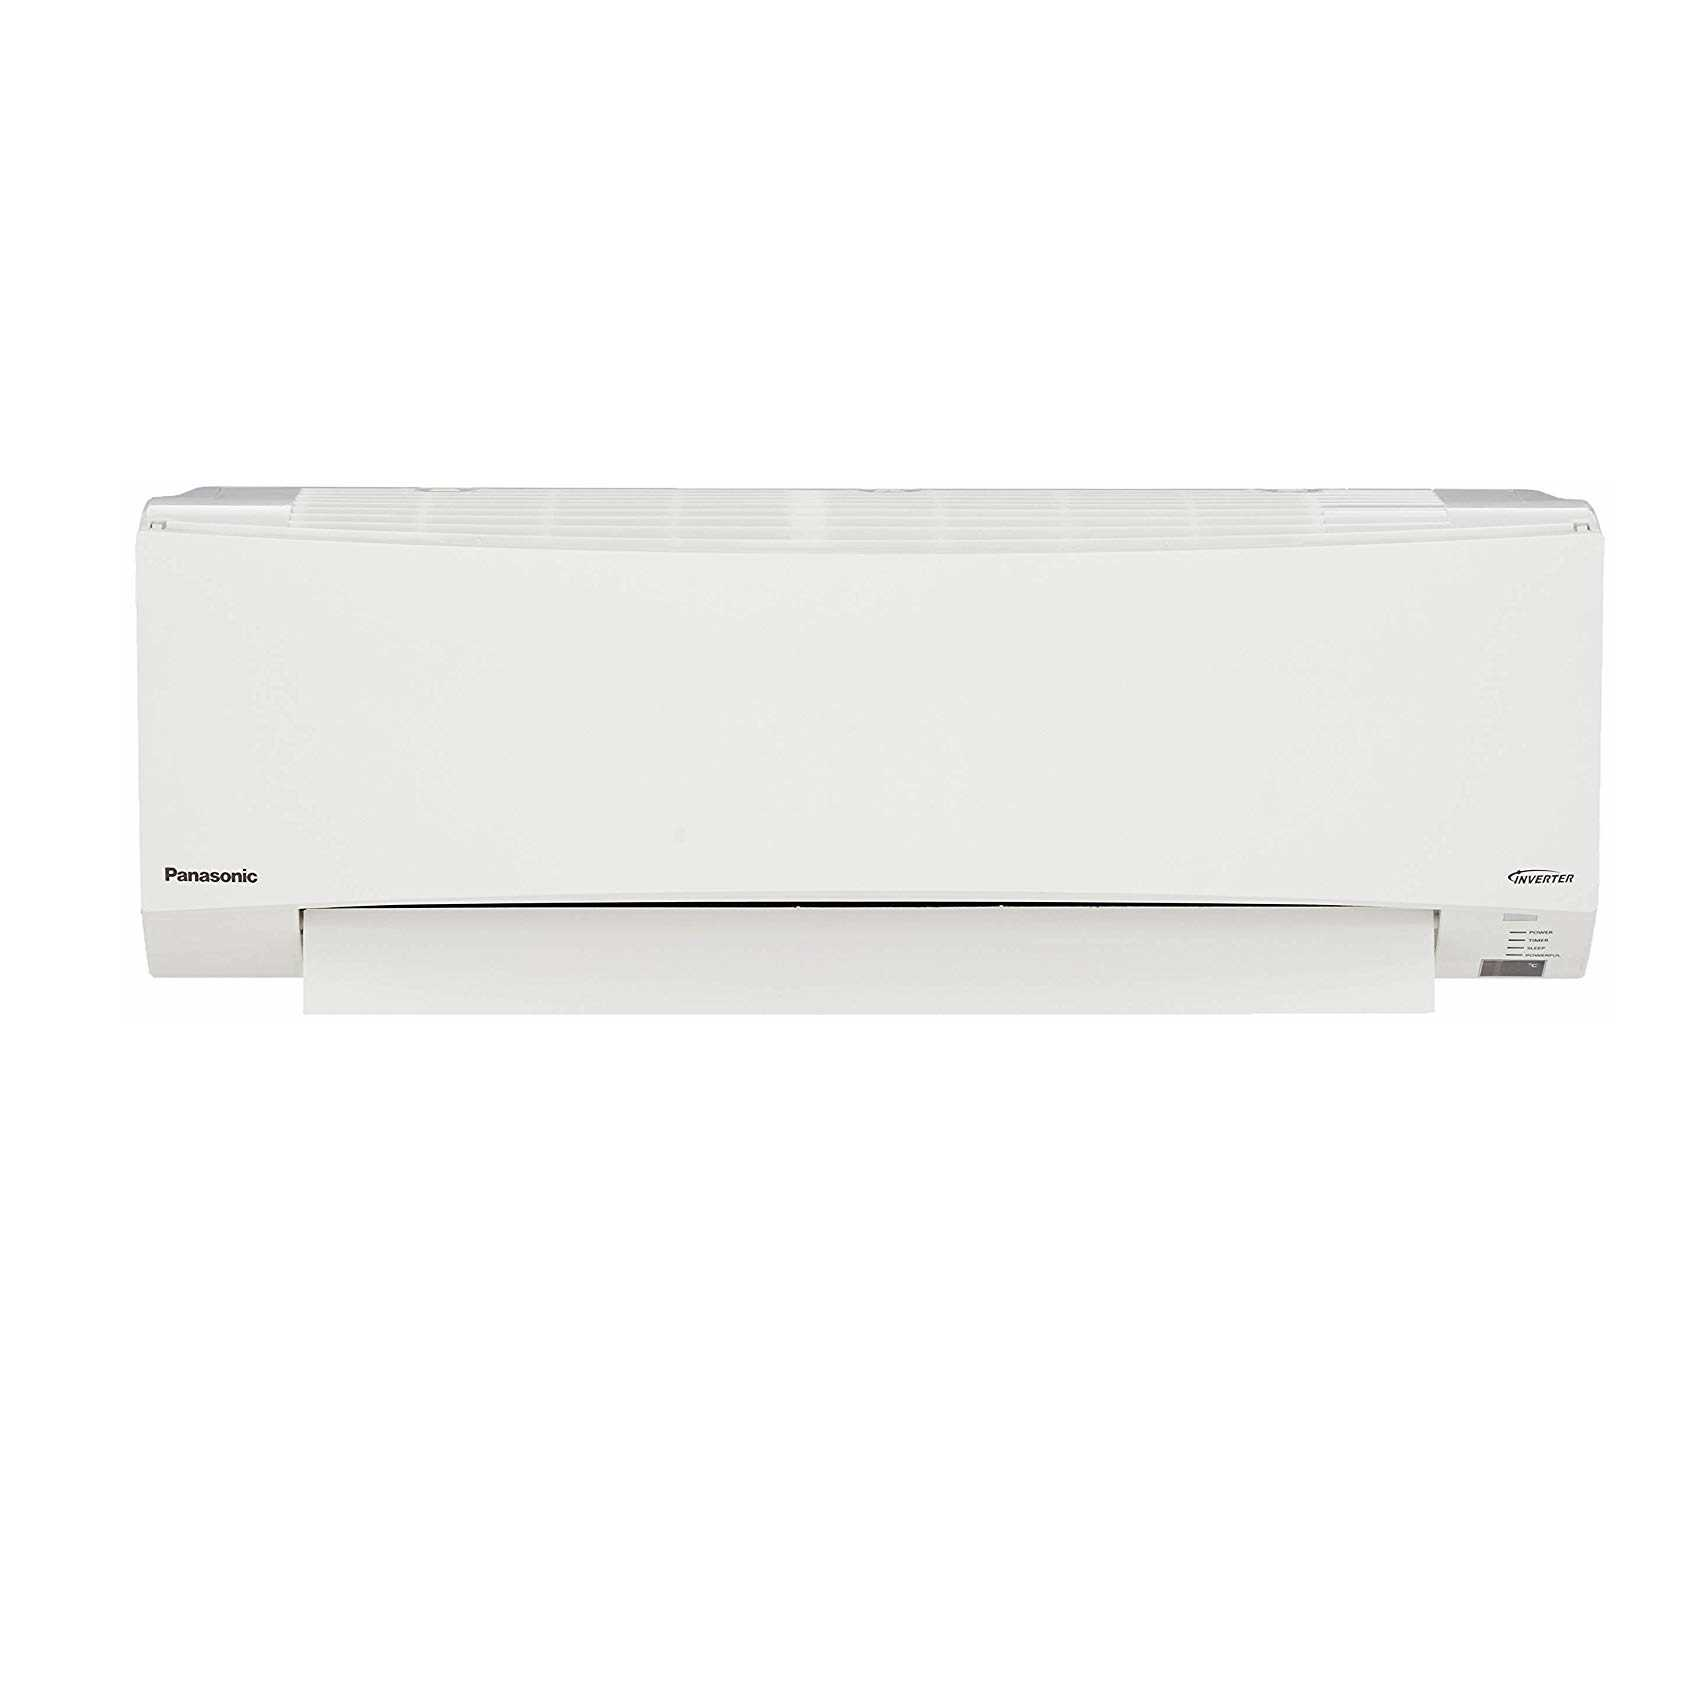 Panasonic CS CU SU18VKYTW 1.5 Ton 3 Star Inverter Split AC